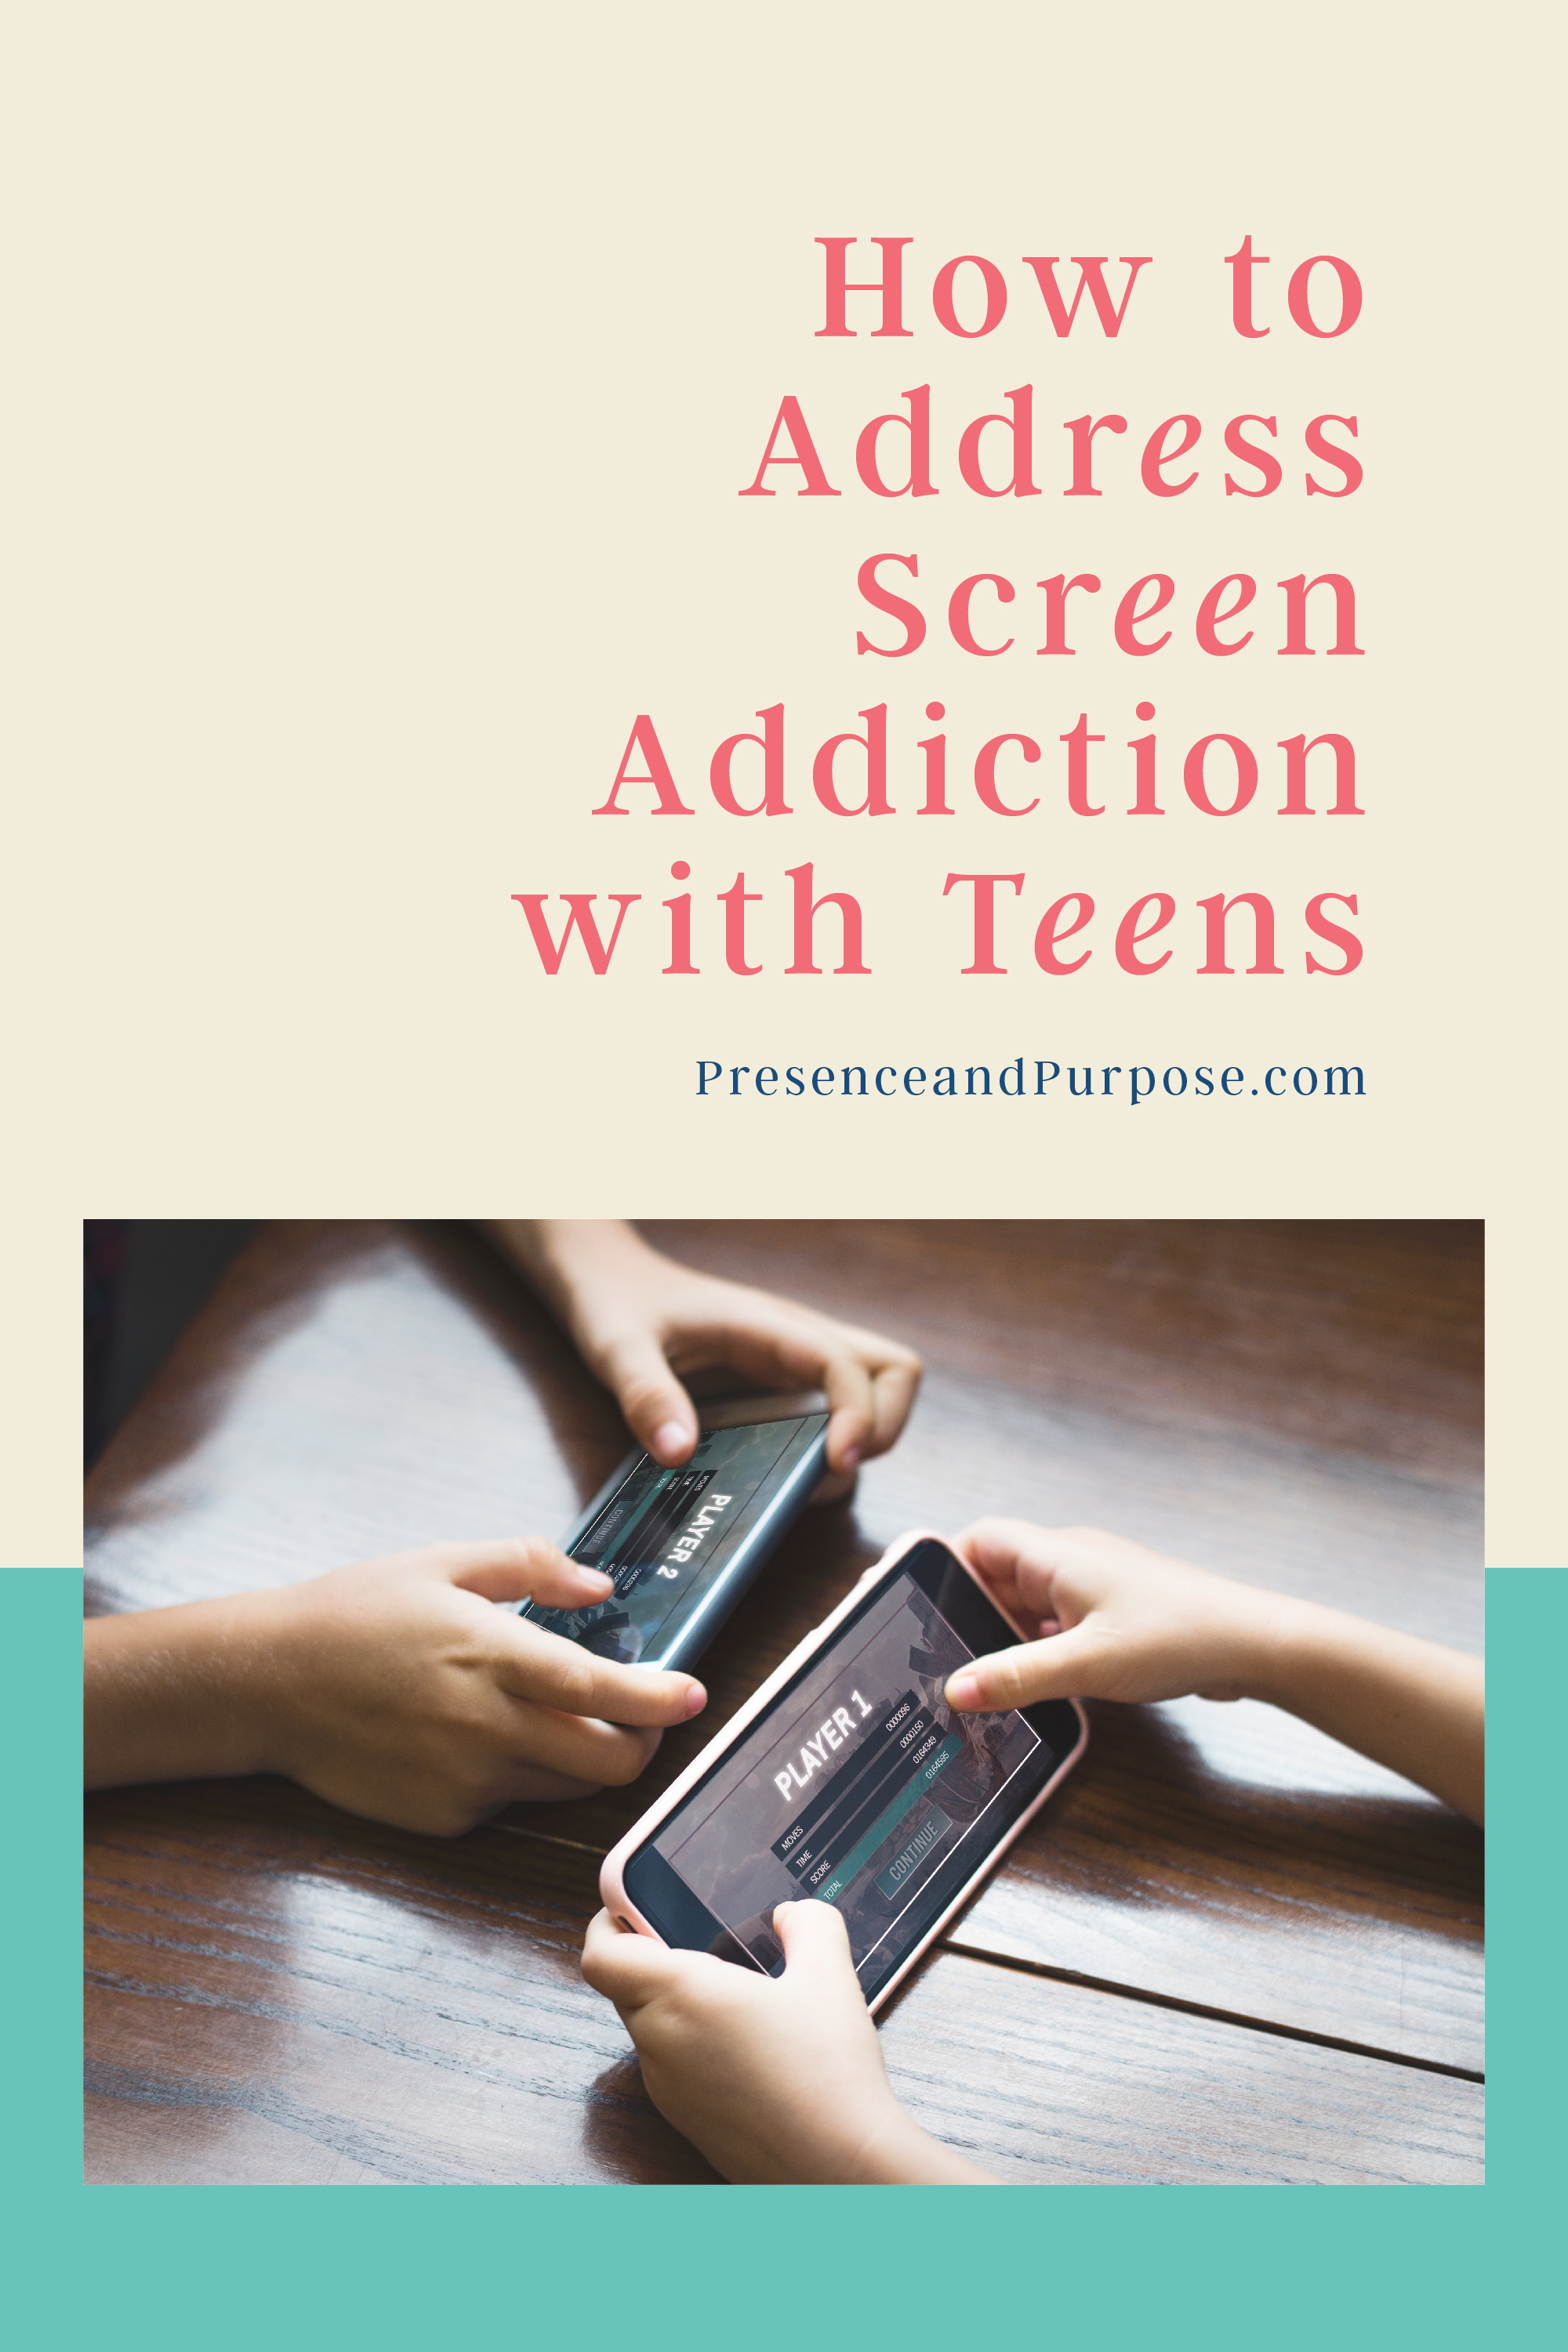 19_0217_How To Address Screen Addiction With Teens.jpg